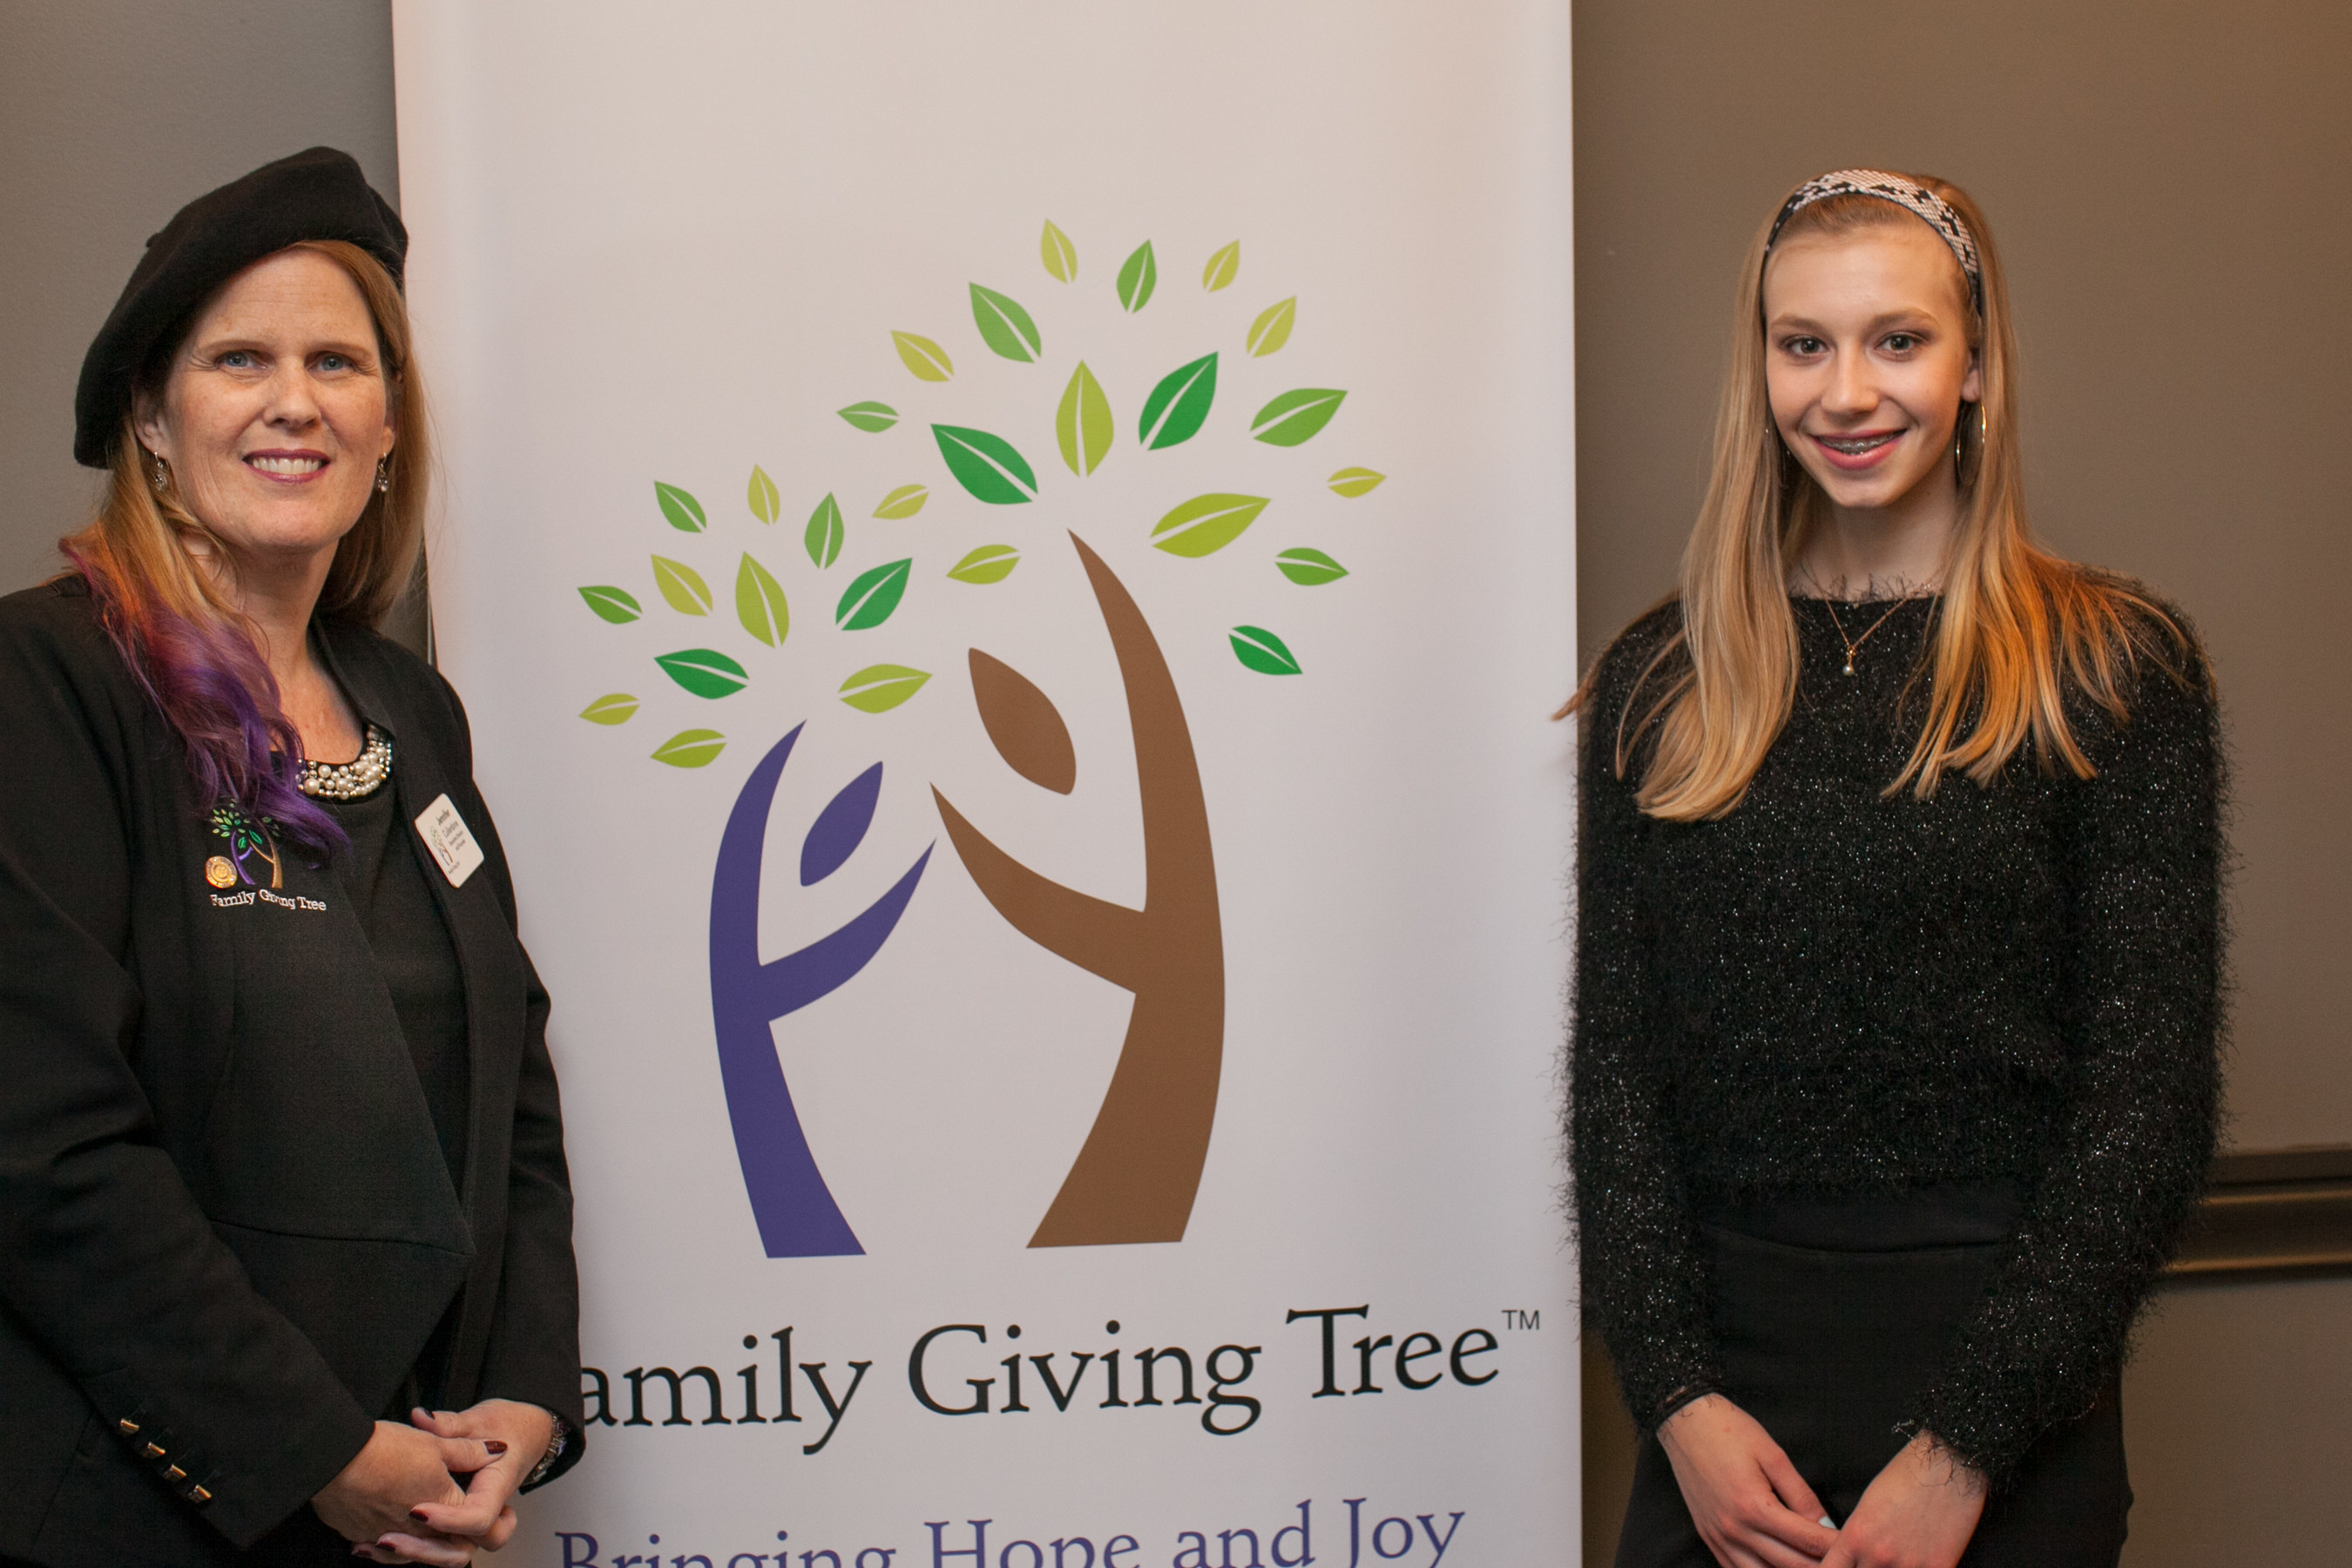 Two-Time U.S. silver medalist Polina Edmunds Champions Silicon Valley Non-Profit Family Giving Tree